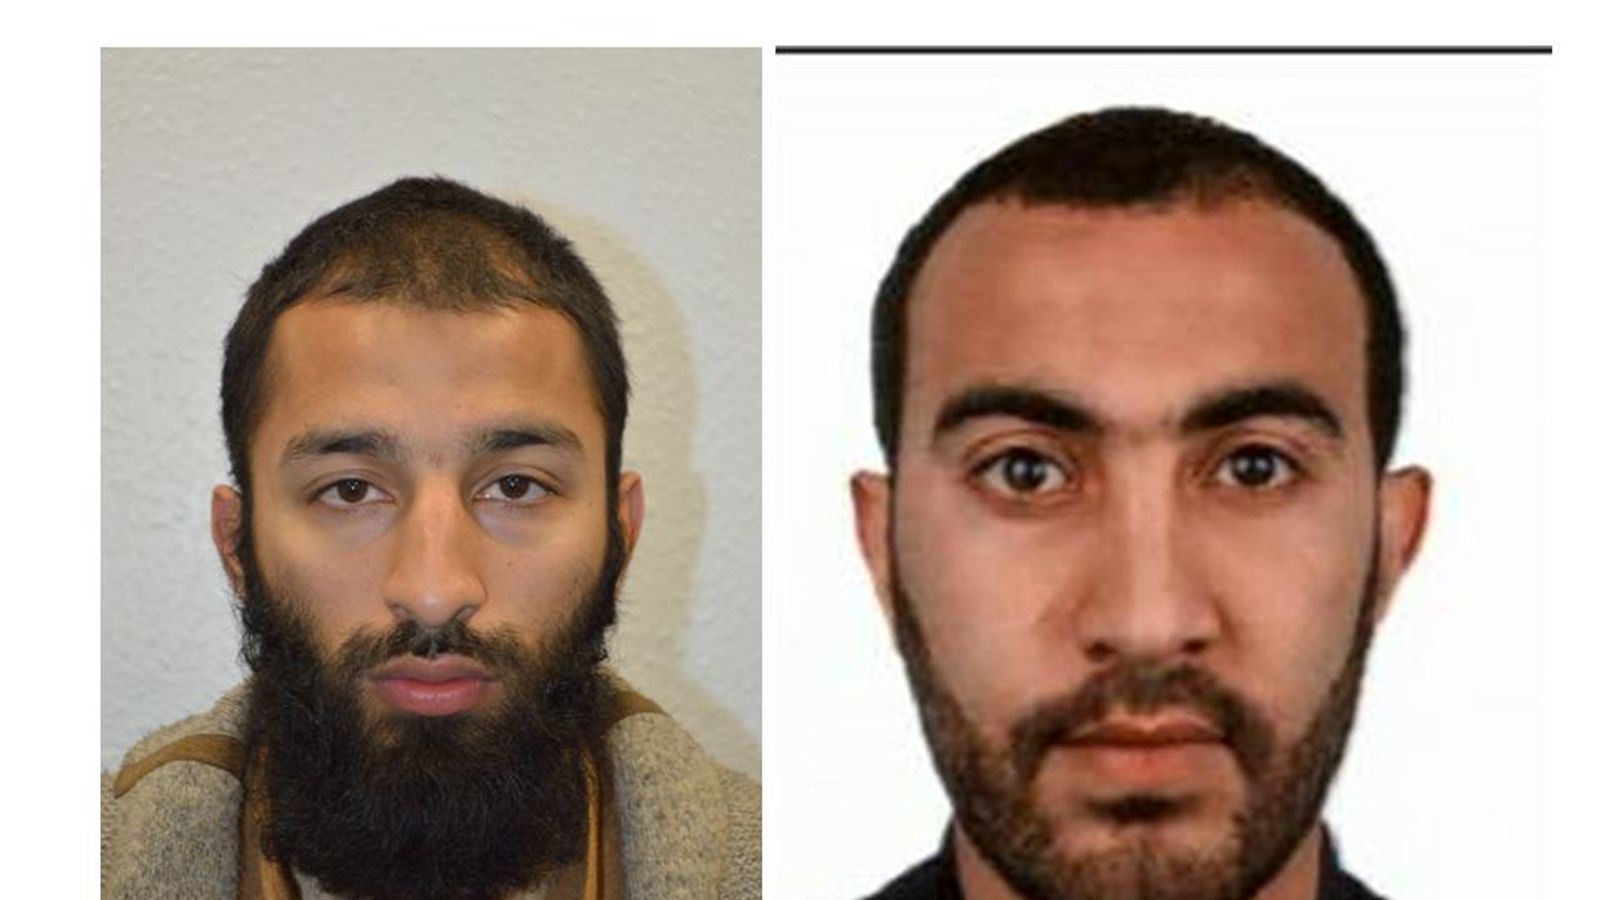 Khuram Butt (L) and Rachid Redouane (R) have been named by the Metropolitan Police